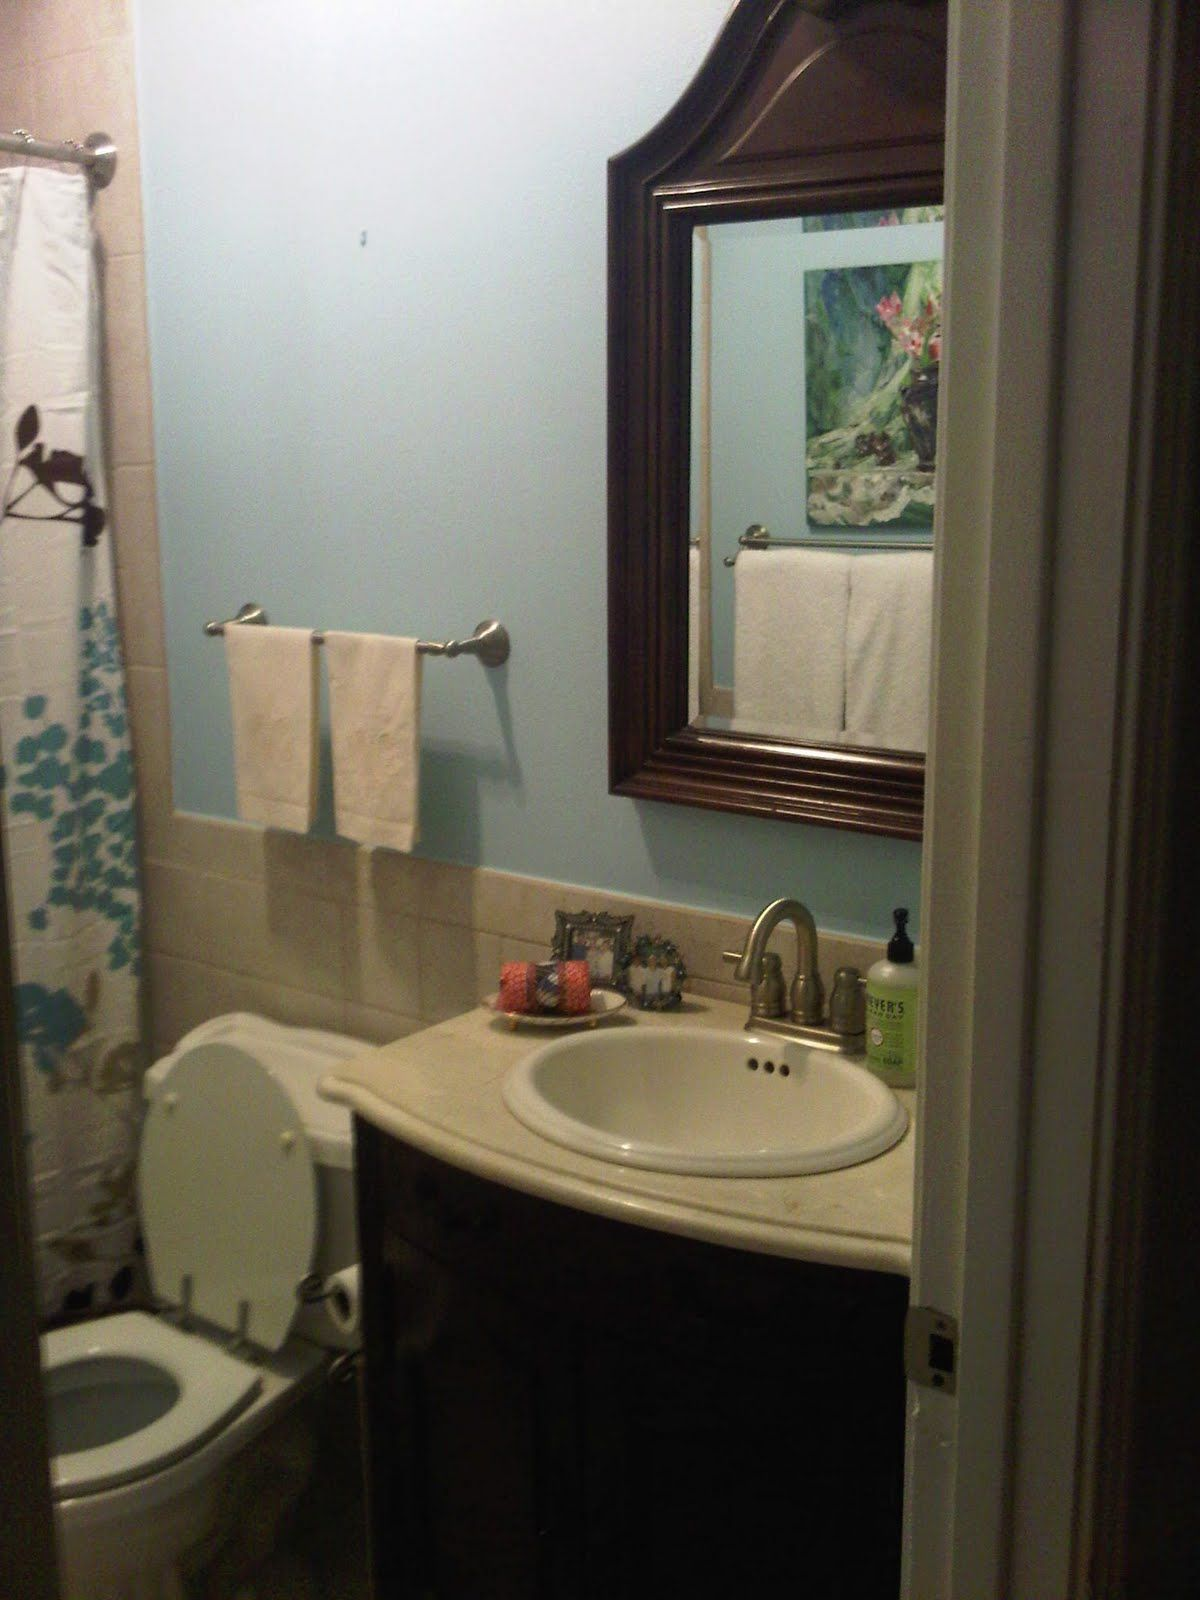 Small bathroom no window paint color google search for Small bathroom paint color ideas